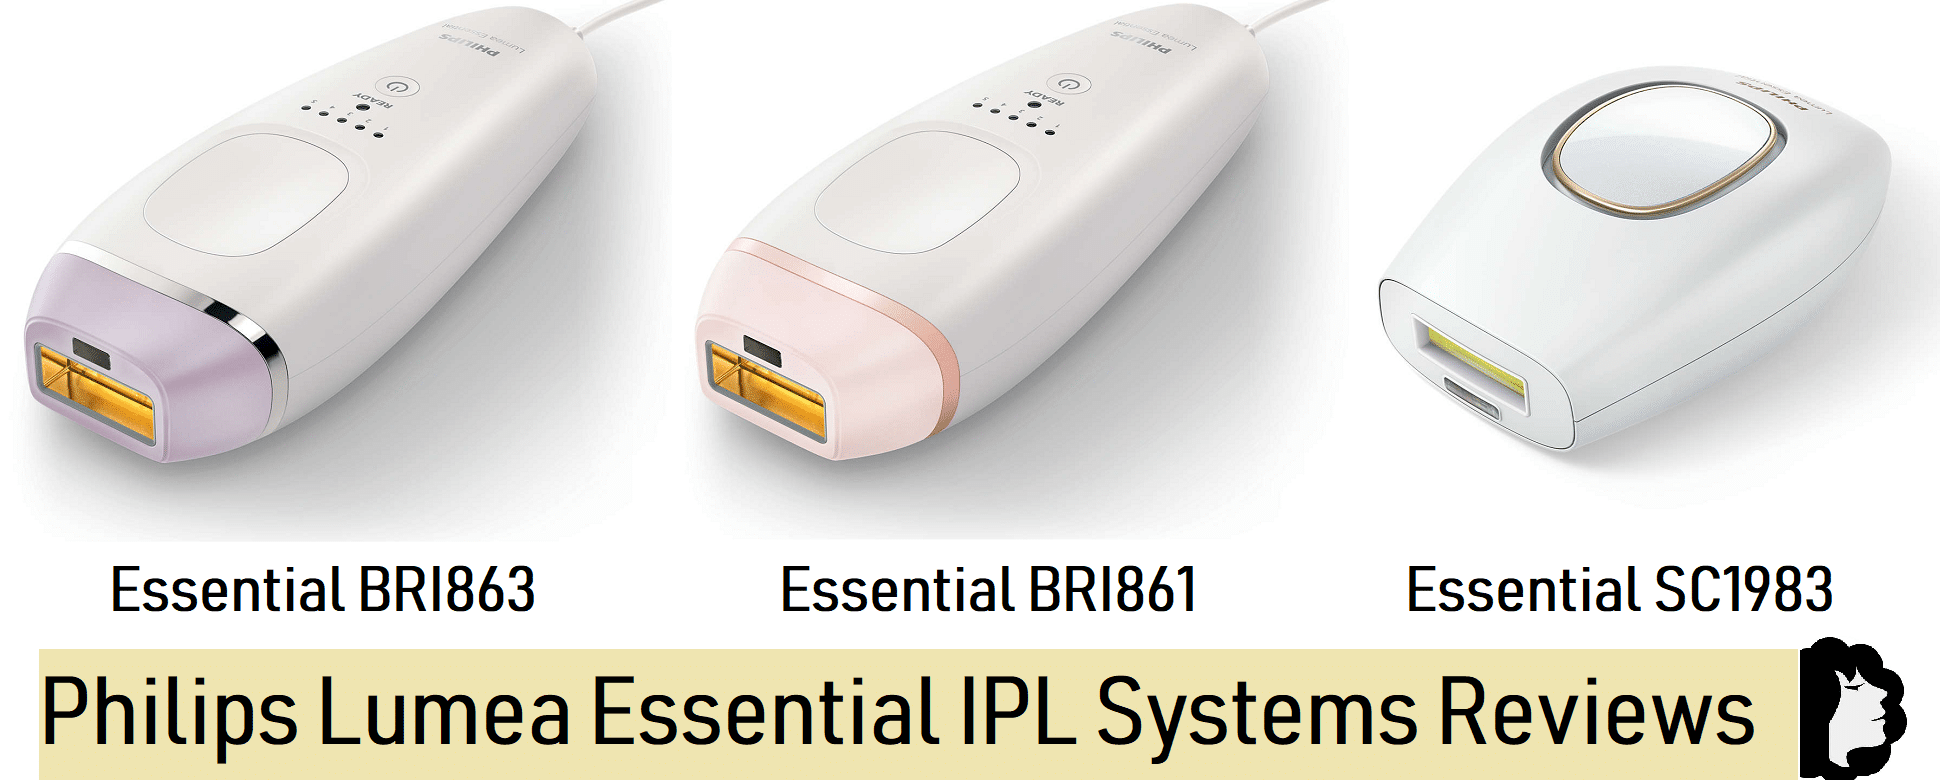 Philips Lumea Essential IPL Systems